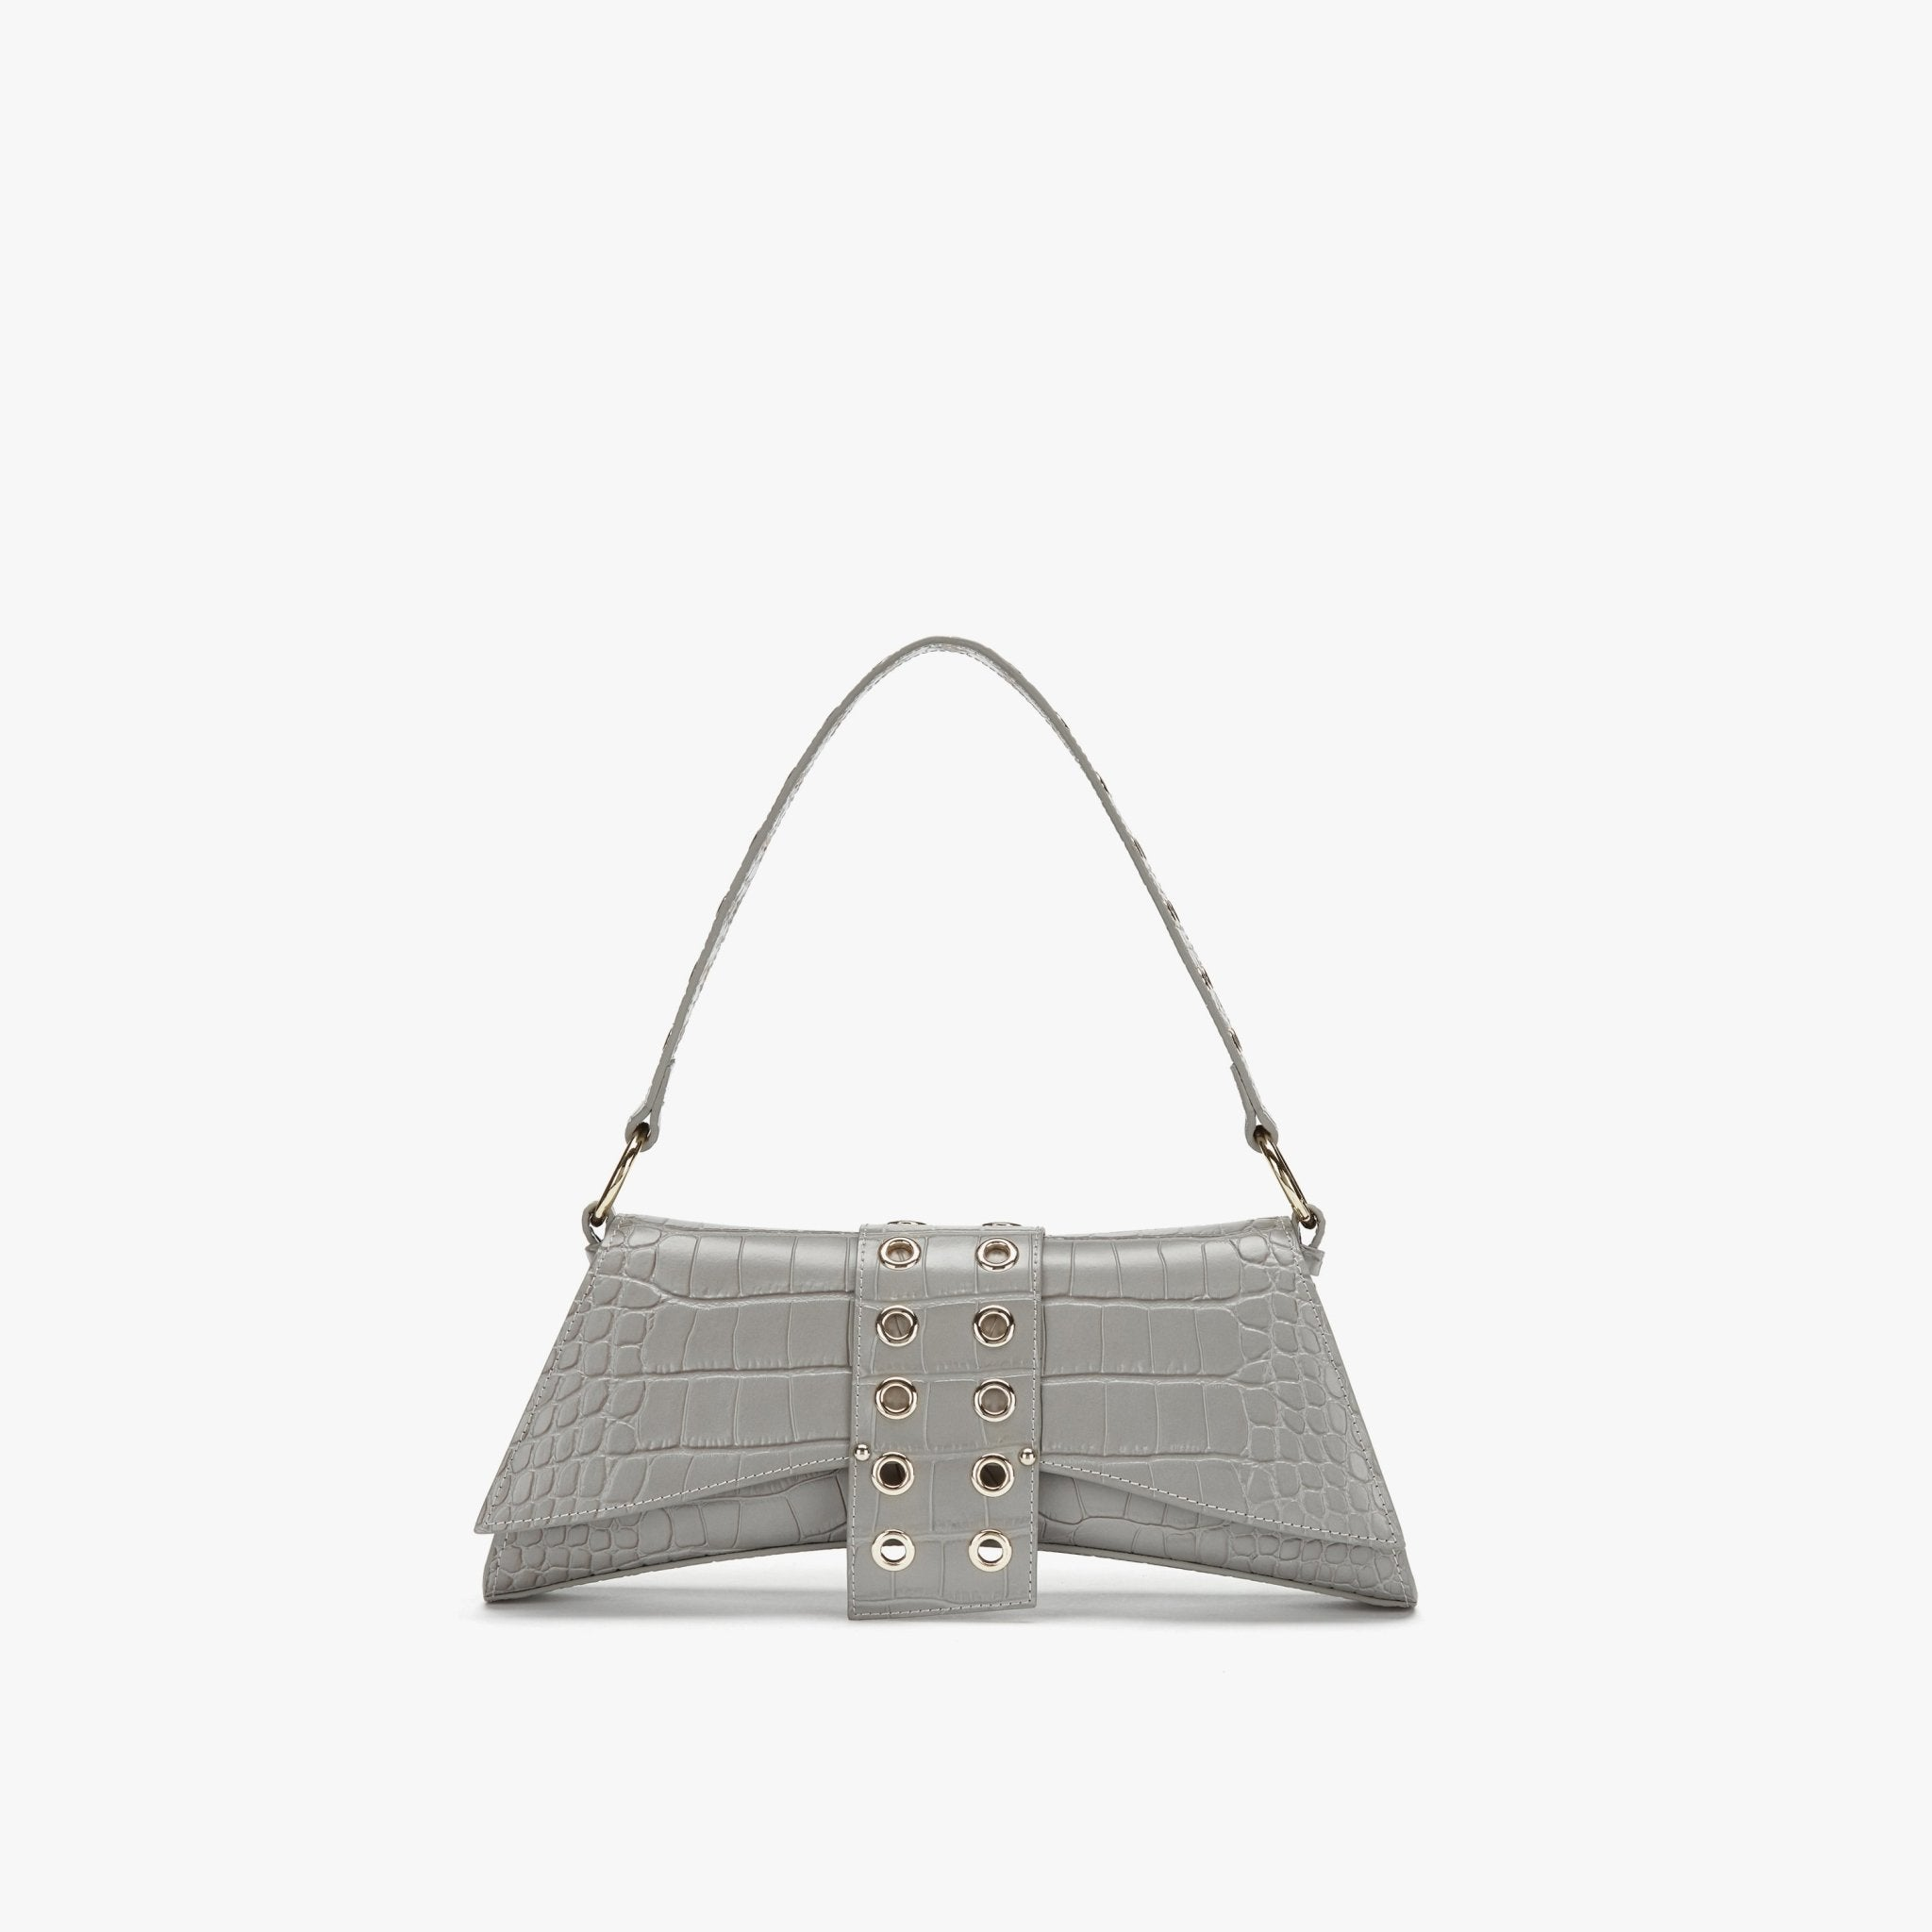 LOST IN ECHO Grey Barrett Metail Chain Bag Large | MADA IN CHINA